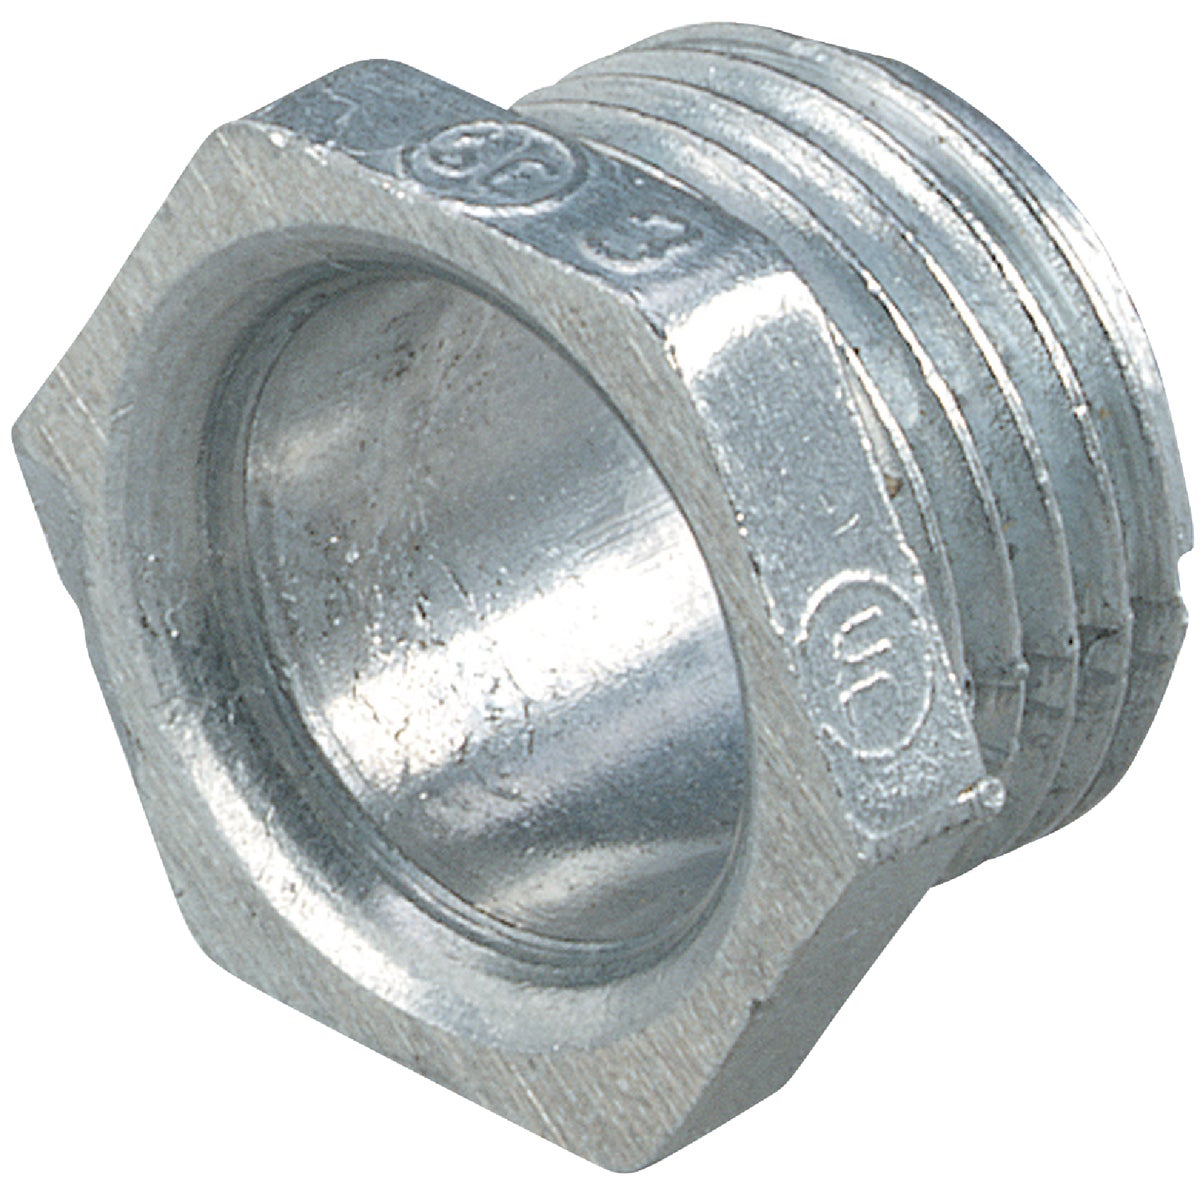 "1/2"" CONDUIT NIPPLE - HA2015 by Thomas & Betts"